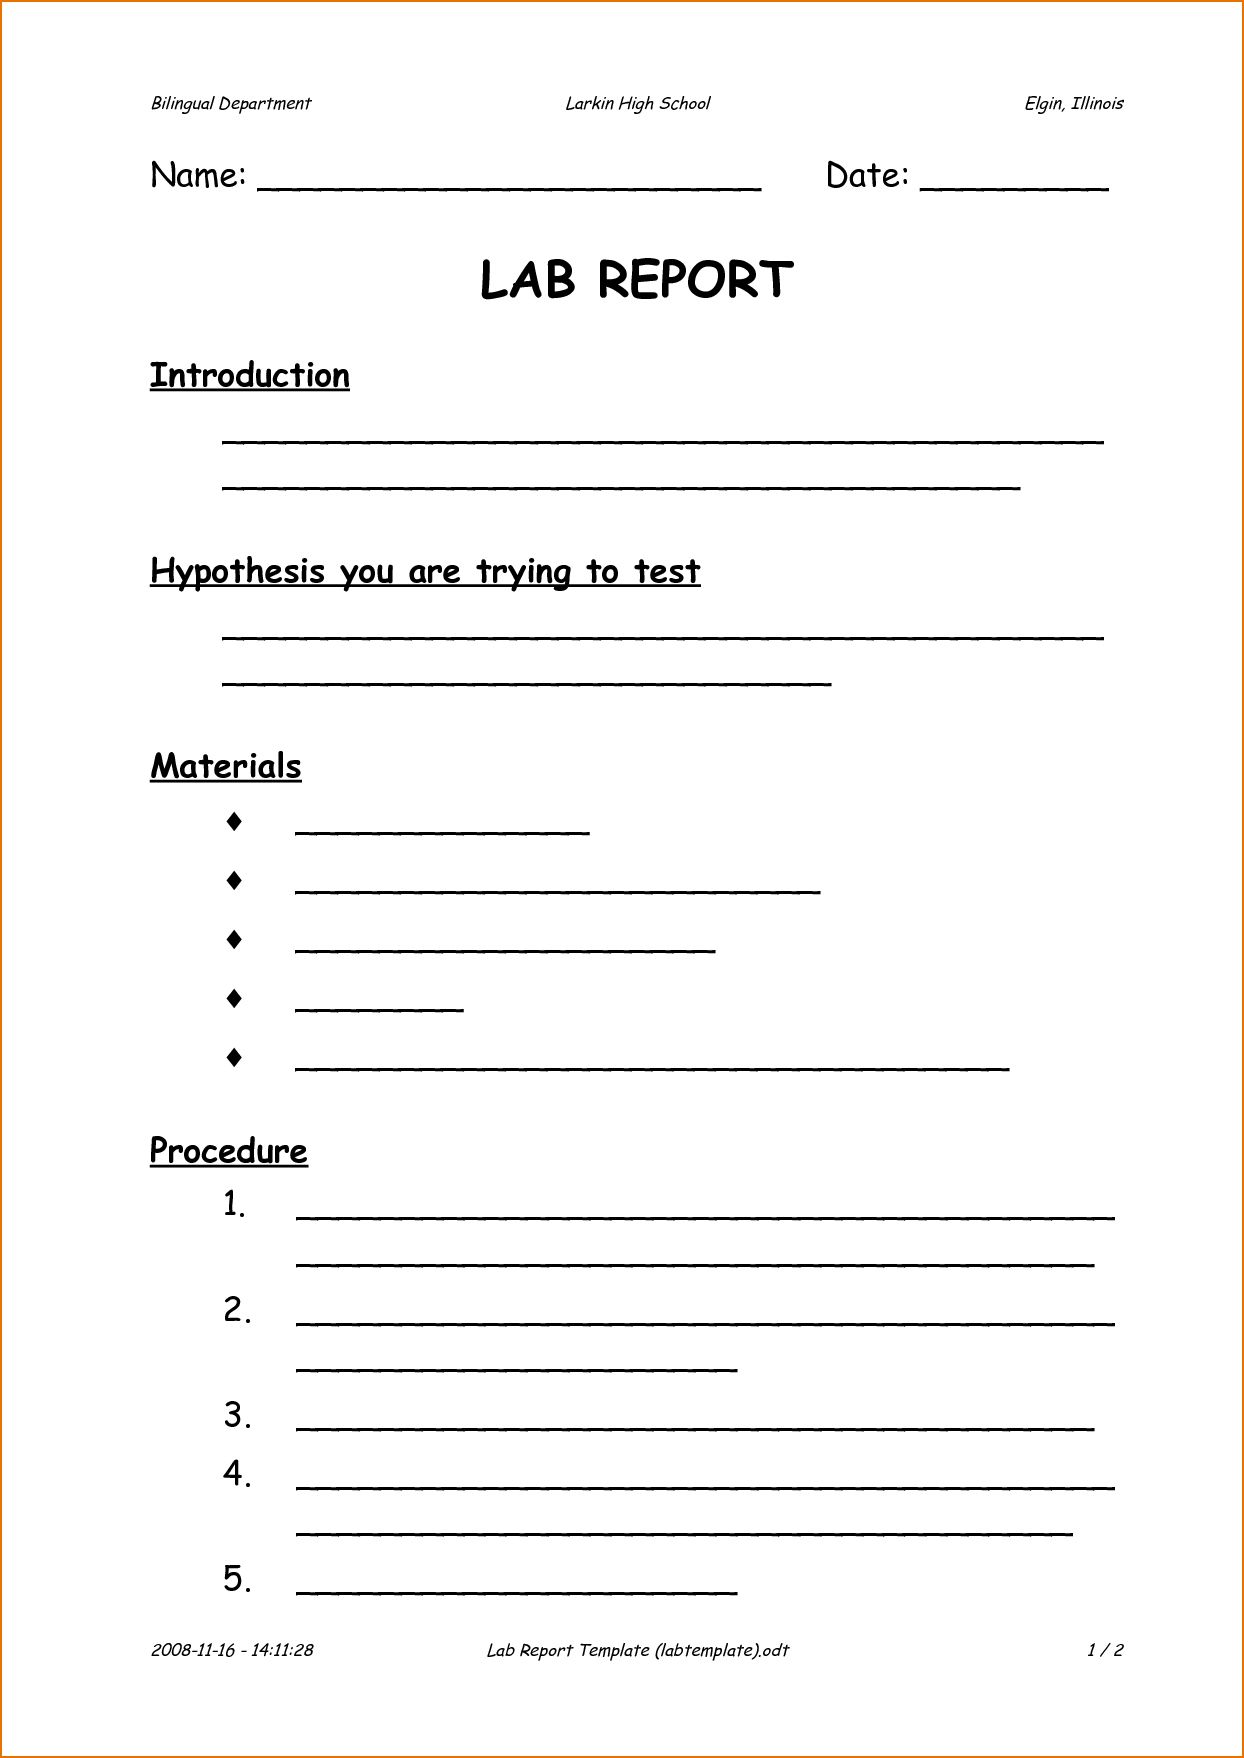 Internal Audit Report Template Iso 9001 And 6 Formal Lab Pertaining To Internal Audit Report Templat In 2020 Lab Report Template Scientific Method Worksheet Lab Report